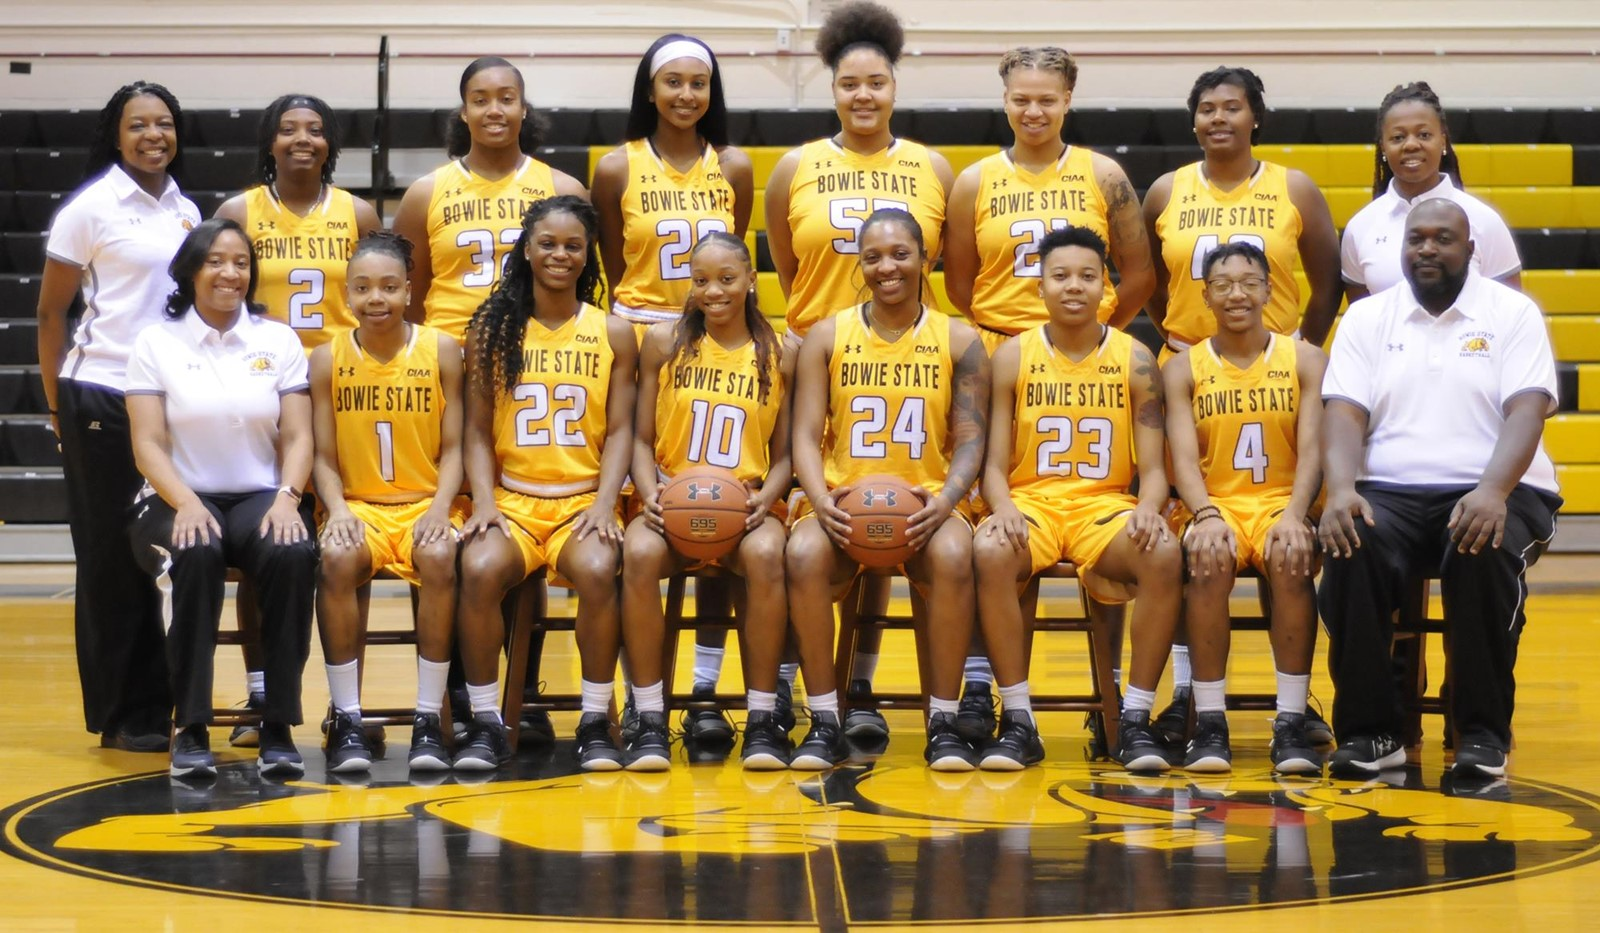 2018 2019 0 Roster Bowie State University Athletics